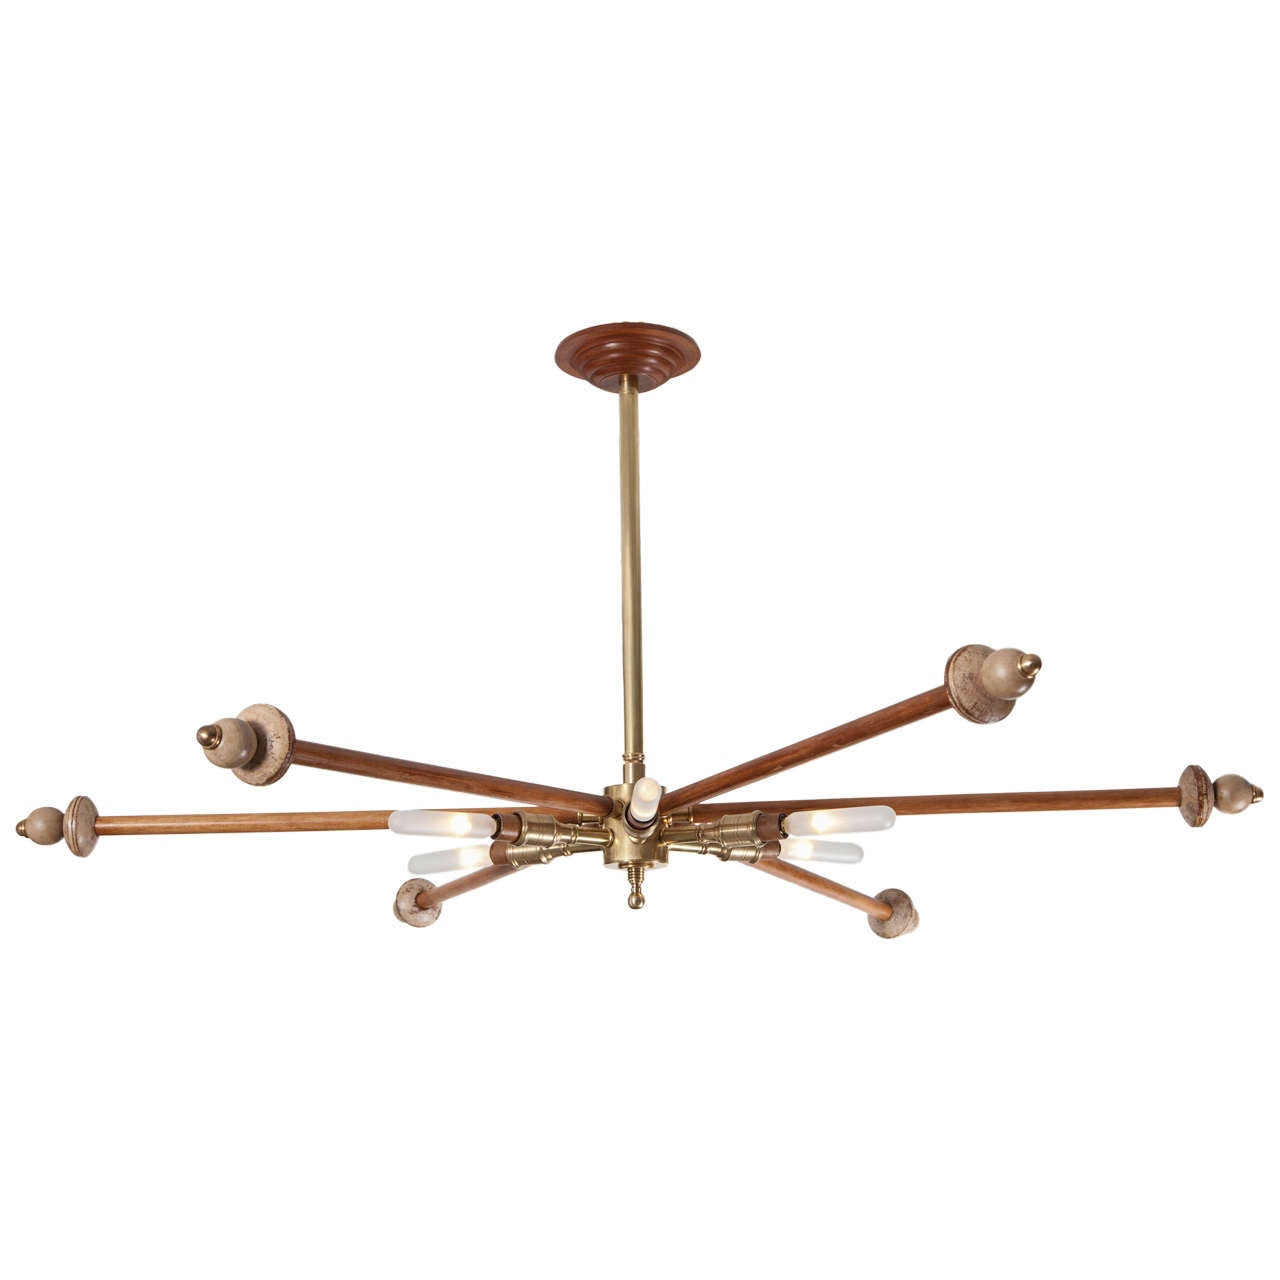 Wood and Brass Sputnik Light Fixture